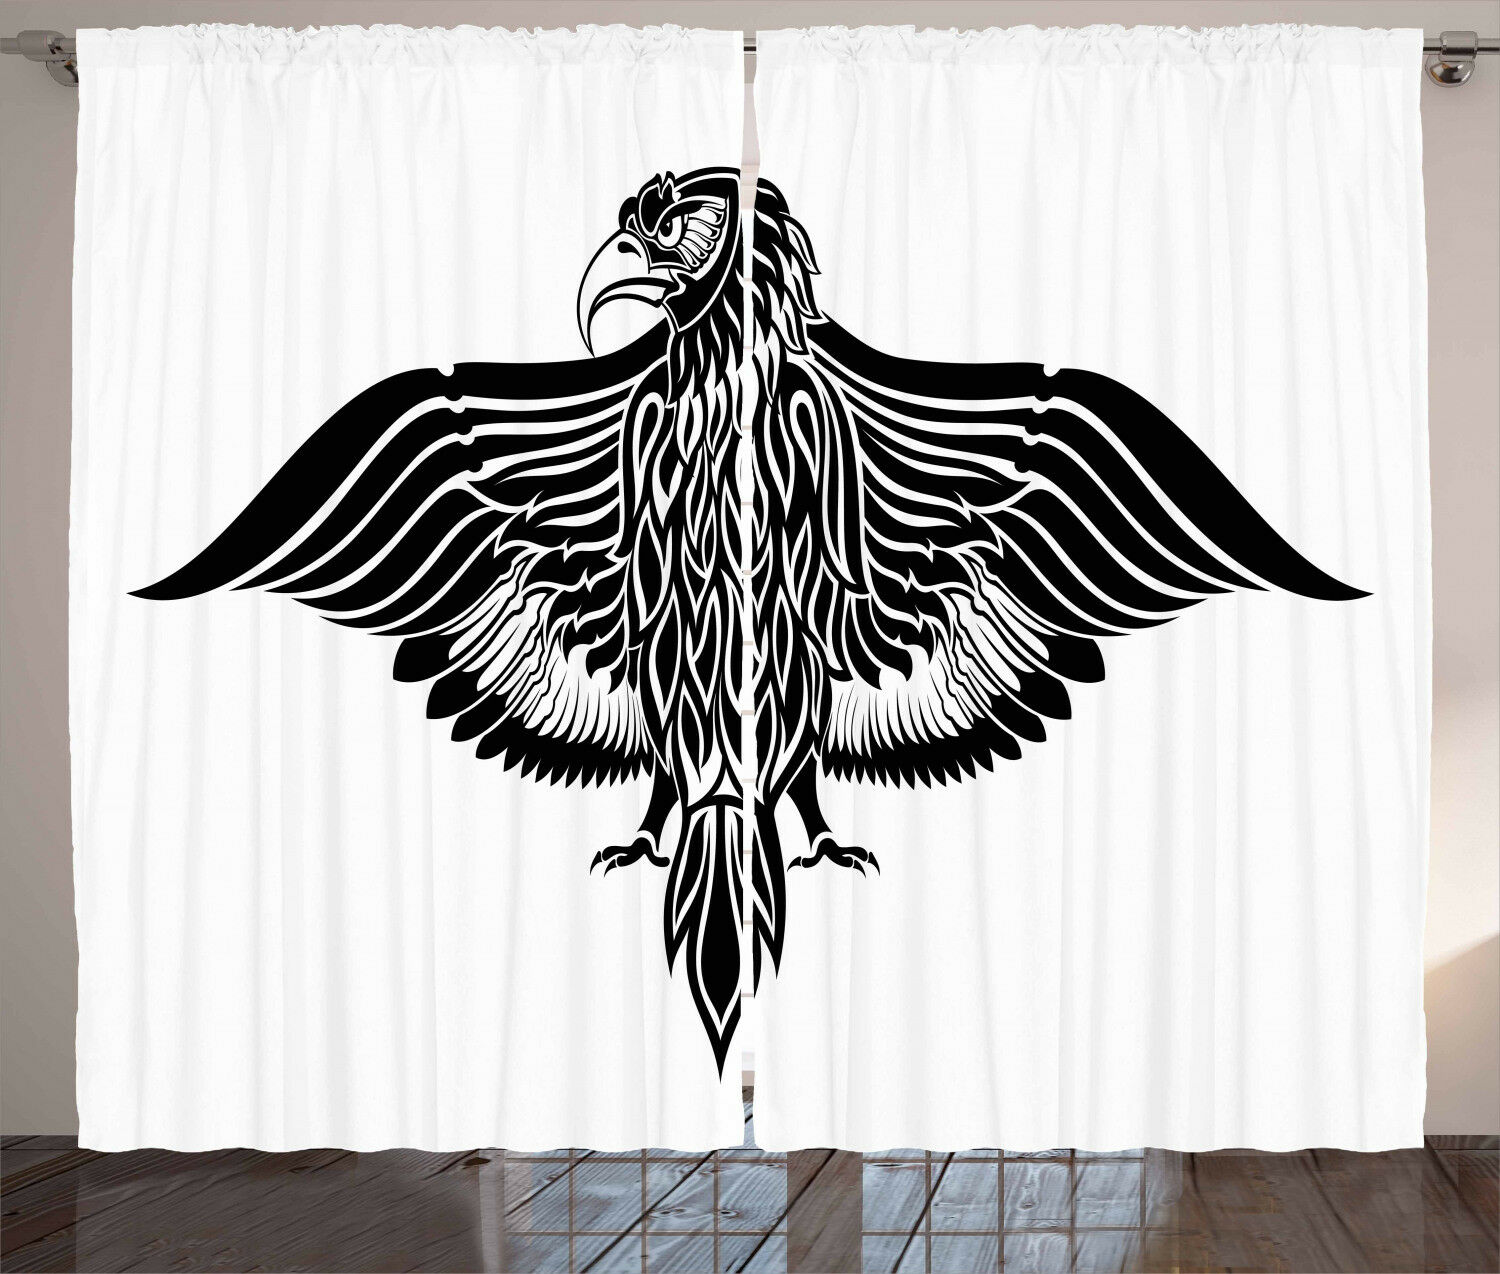 Eagle Curtains 2 Panel Set for Decor 5 Größes Größes Größes Available Window Drapes 2f0b51